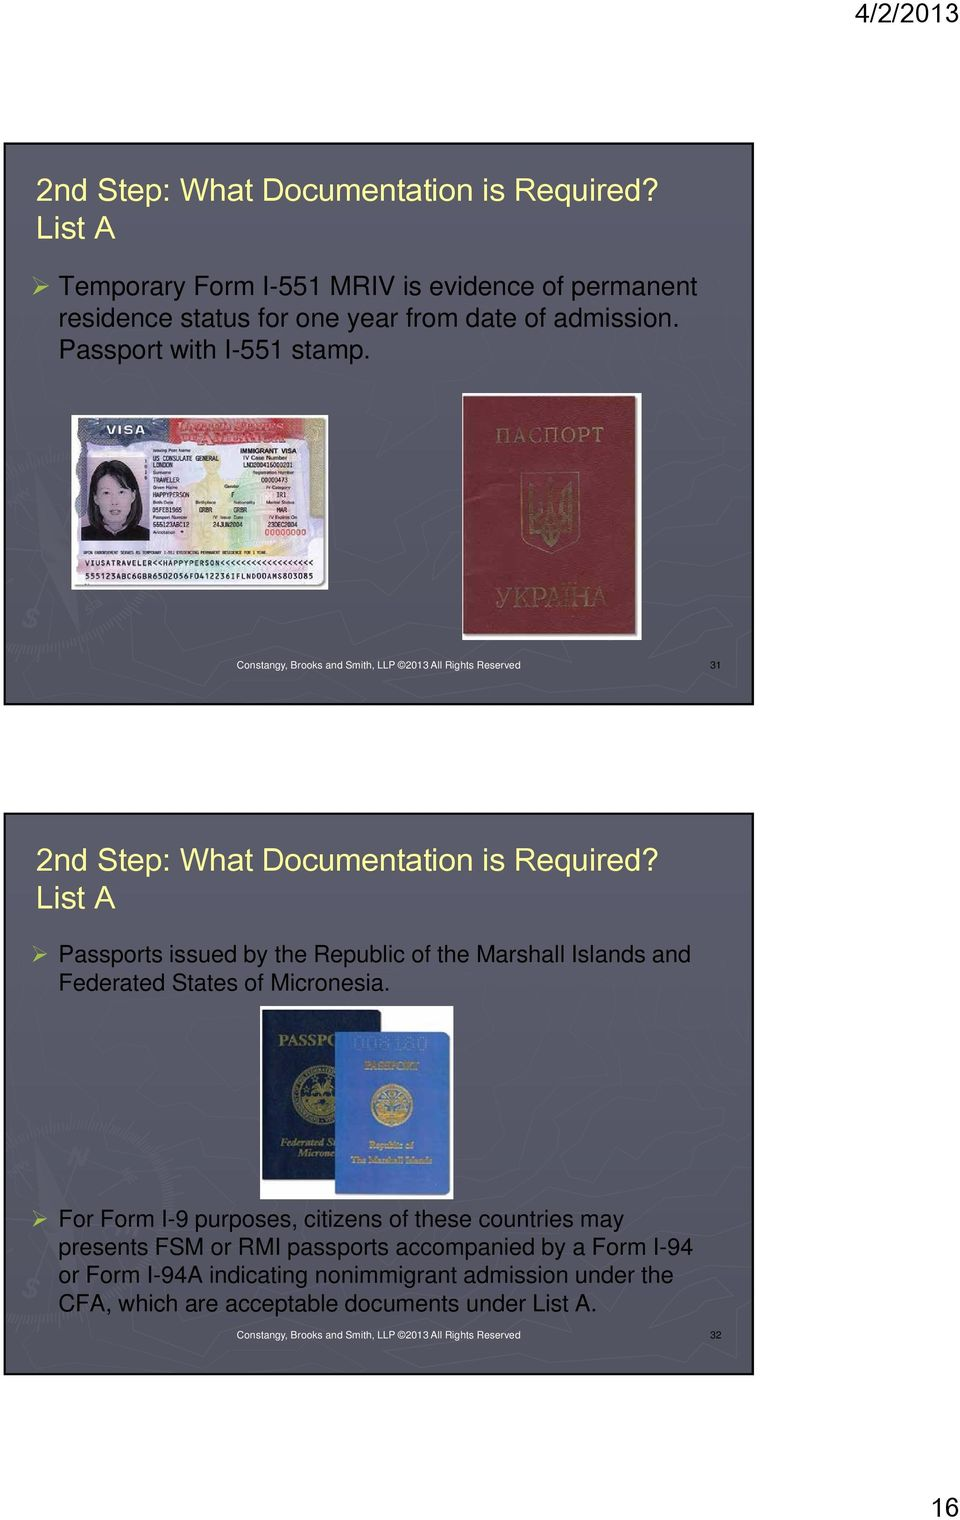 List A Passports issued by the Republic of the Marshall Islands and Federated States of Micronesia.